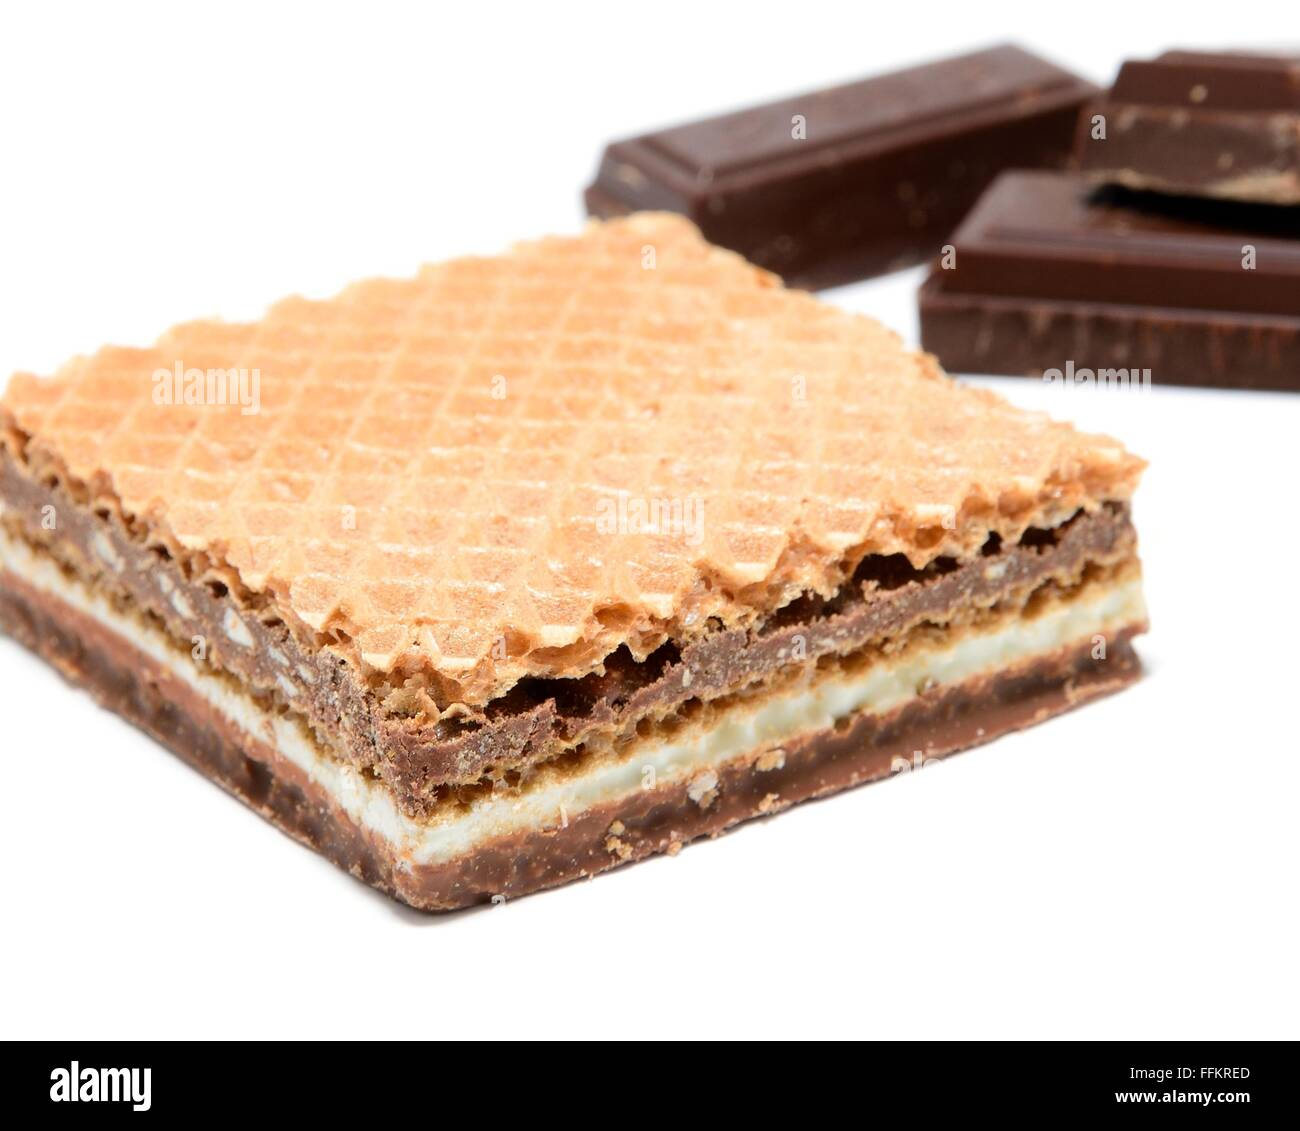 Wafer with hazelnut and milk cream with pieces of dark chocolate on white background. - Stock Image